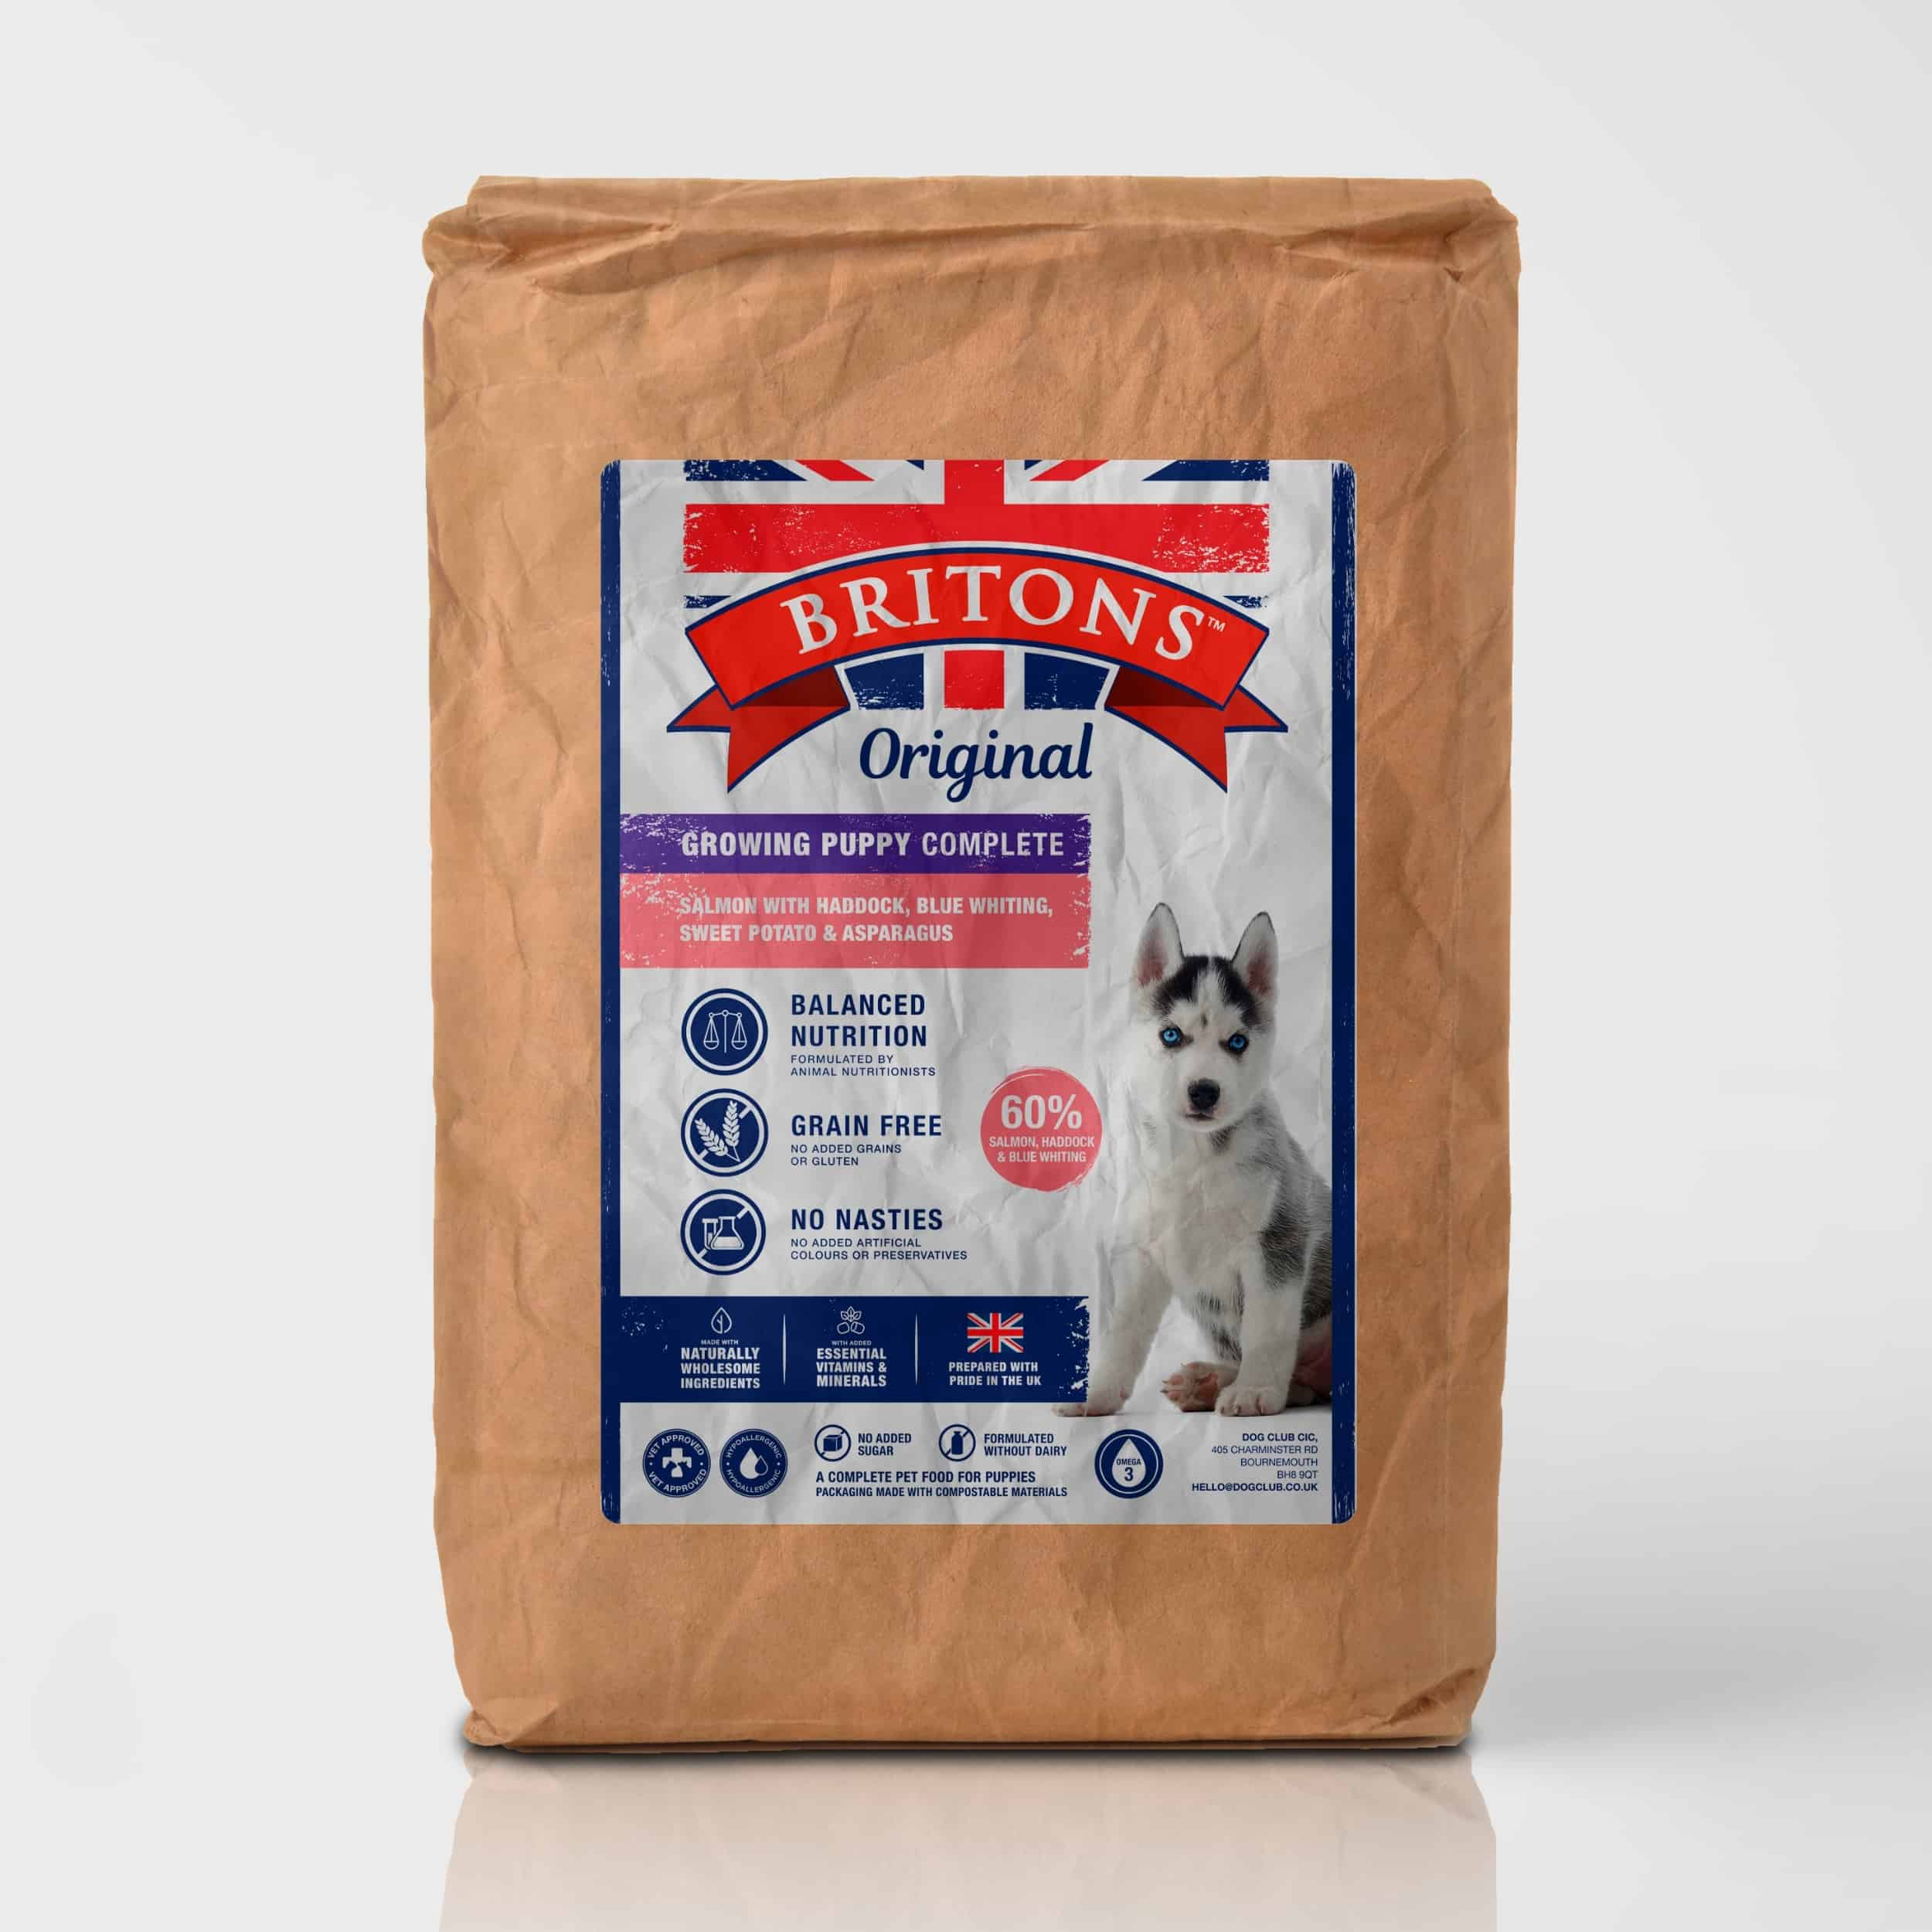 Growing Puppy, grain free, complete dry food. Freshly prepared Salmon with Haddock, Blue Whiting, Sweet Potato & Asparagus. Britons Original.